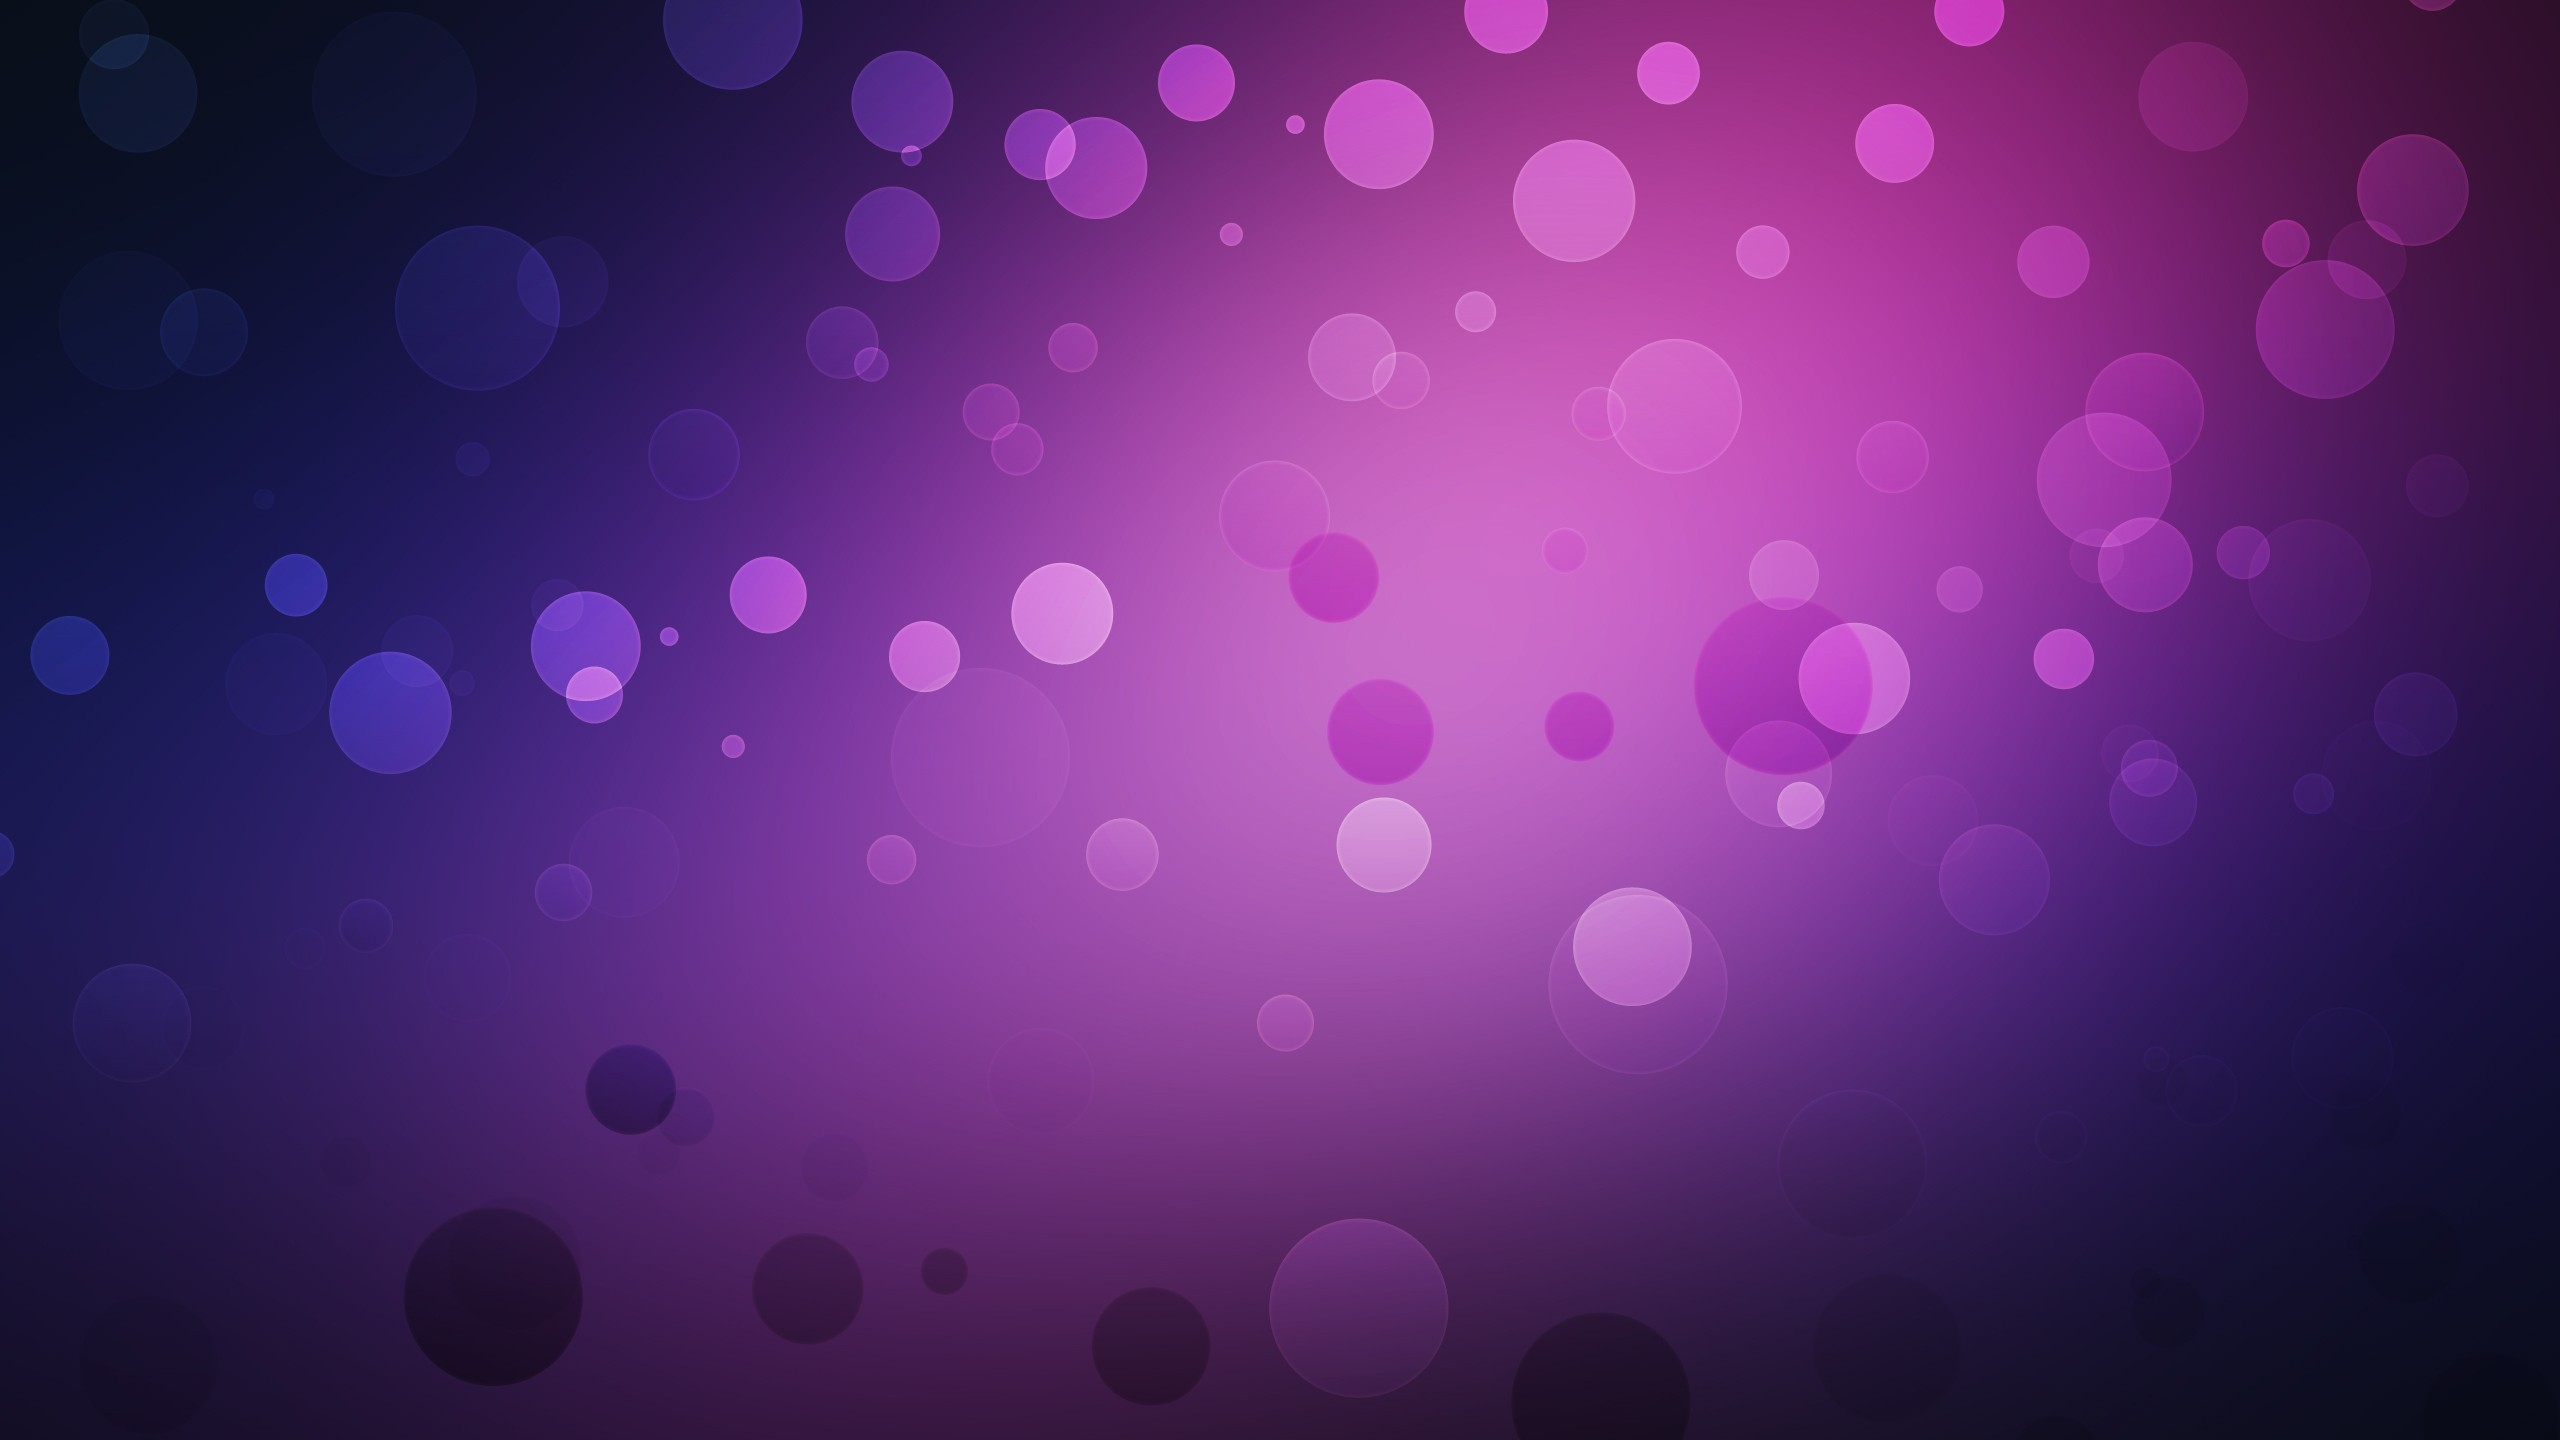 gradient wallpaper HD 2560x1440